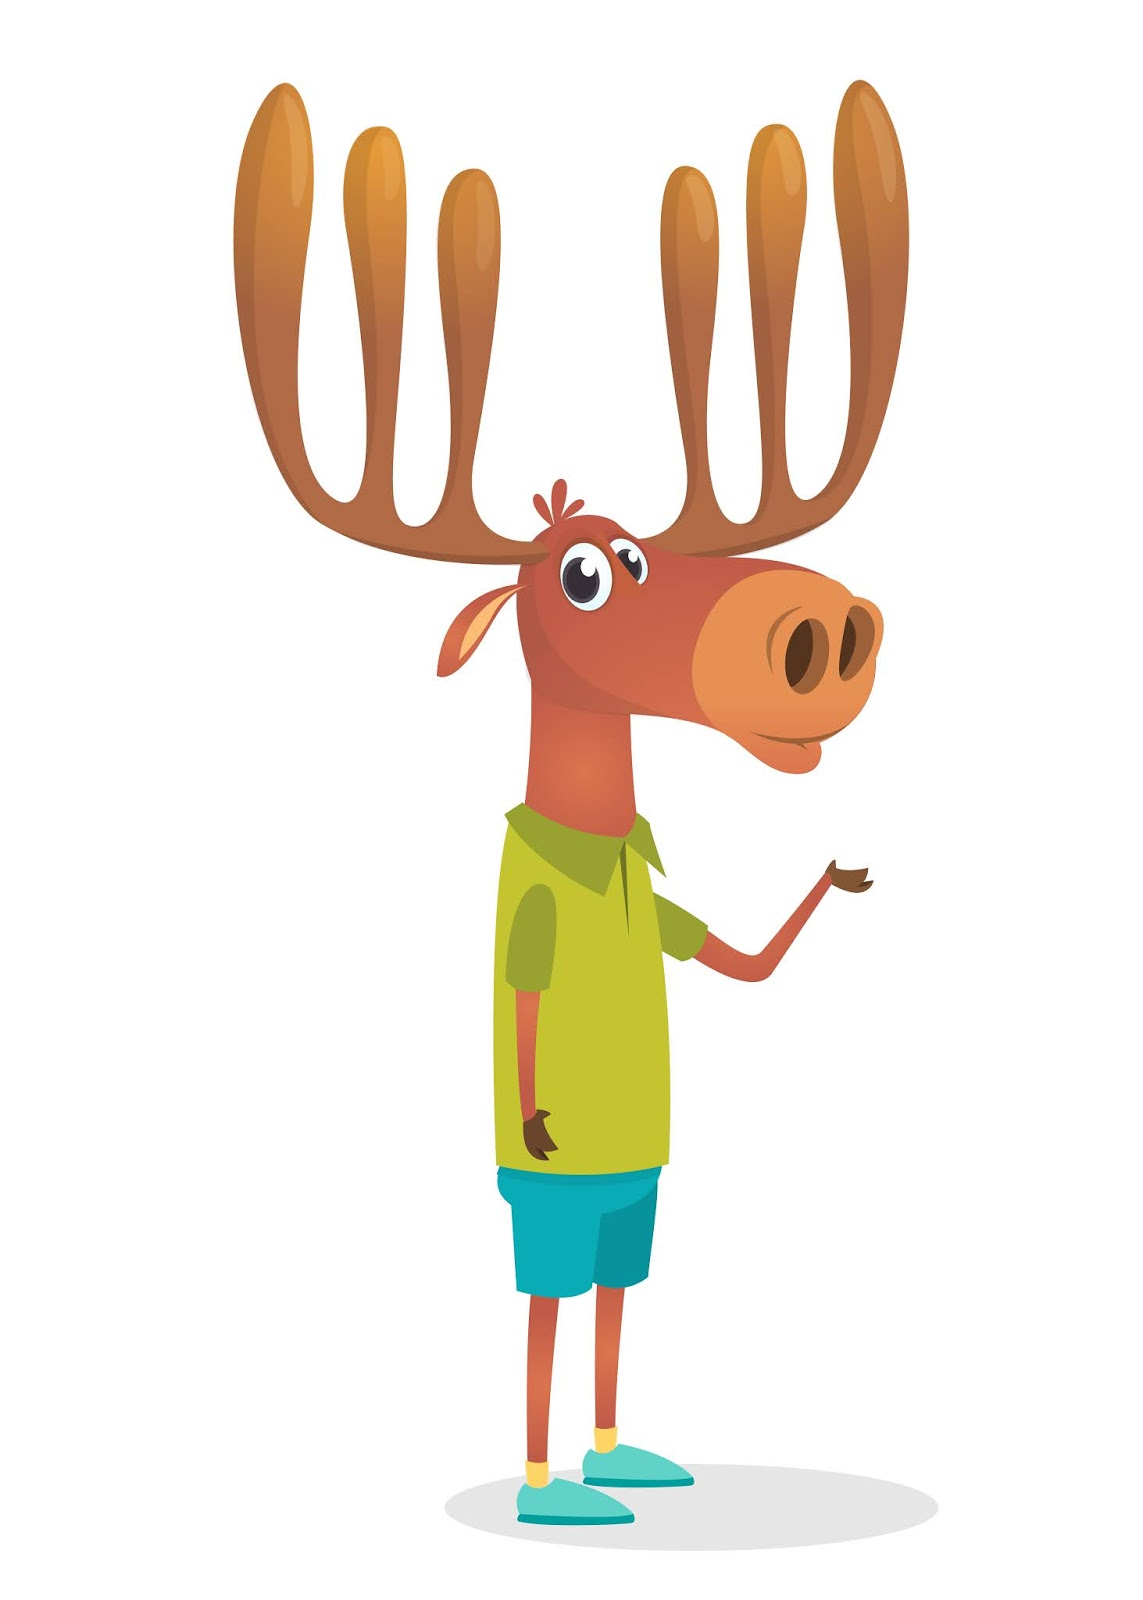 Cartoon Funny Moose Illustration Free Download Vector CDR, AI, EPS and PNG Formats